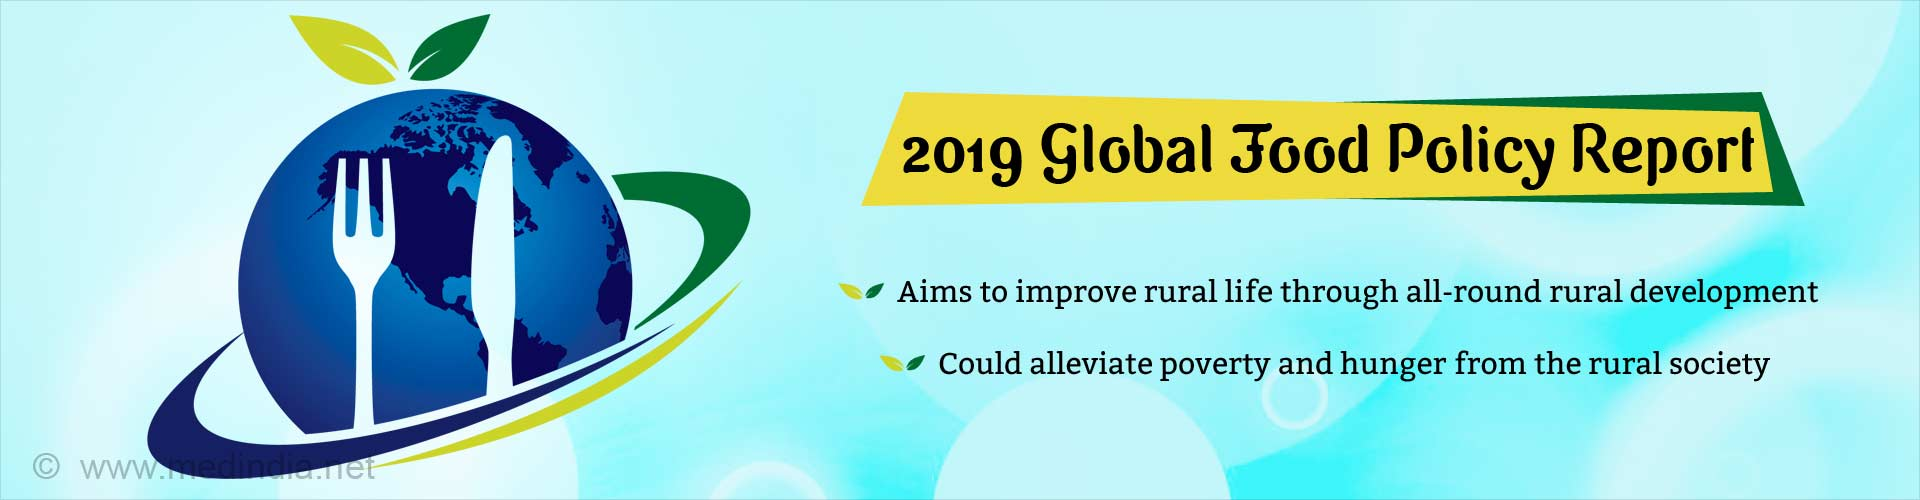 Global Food Policy Report 2019: Emphasis on Improving Rural Life